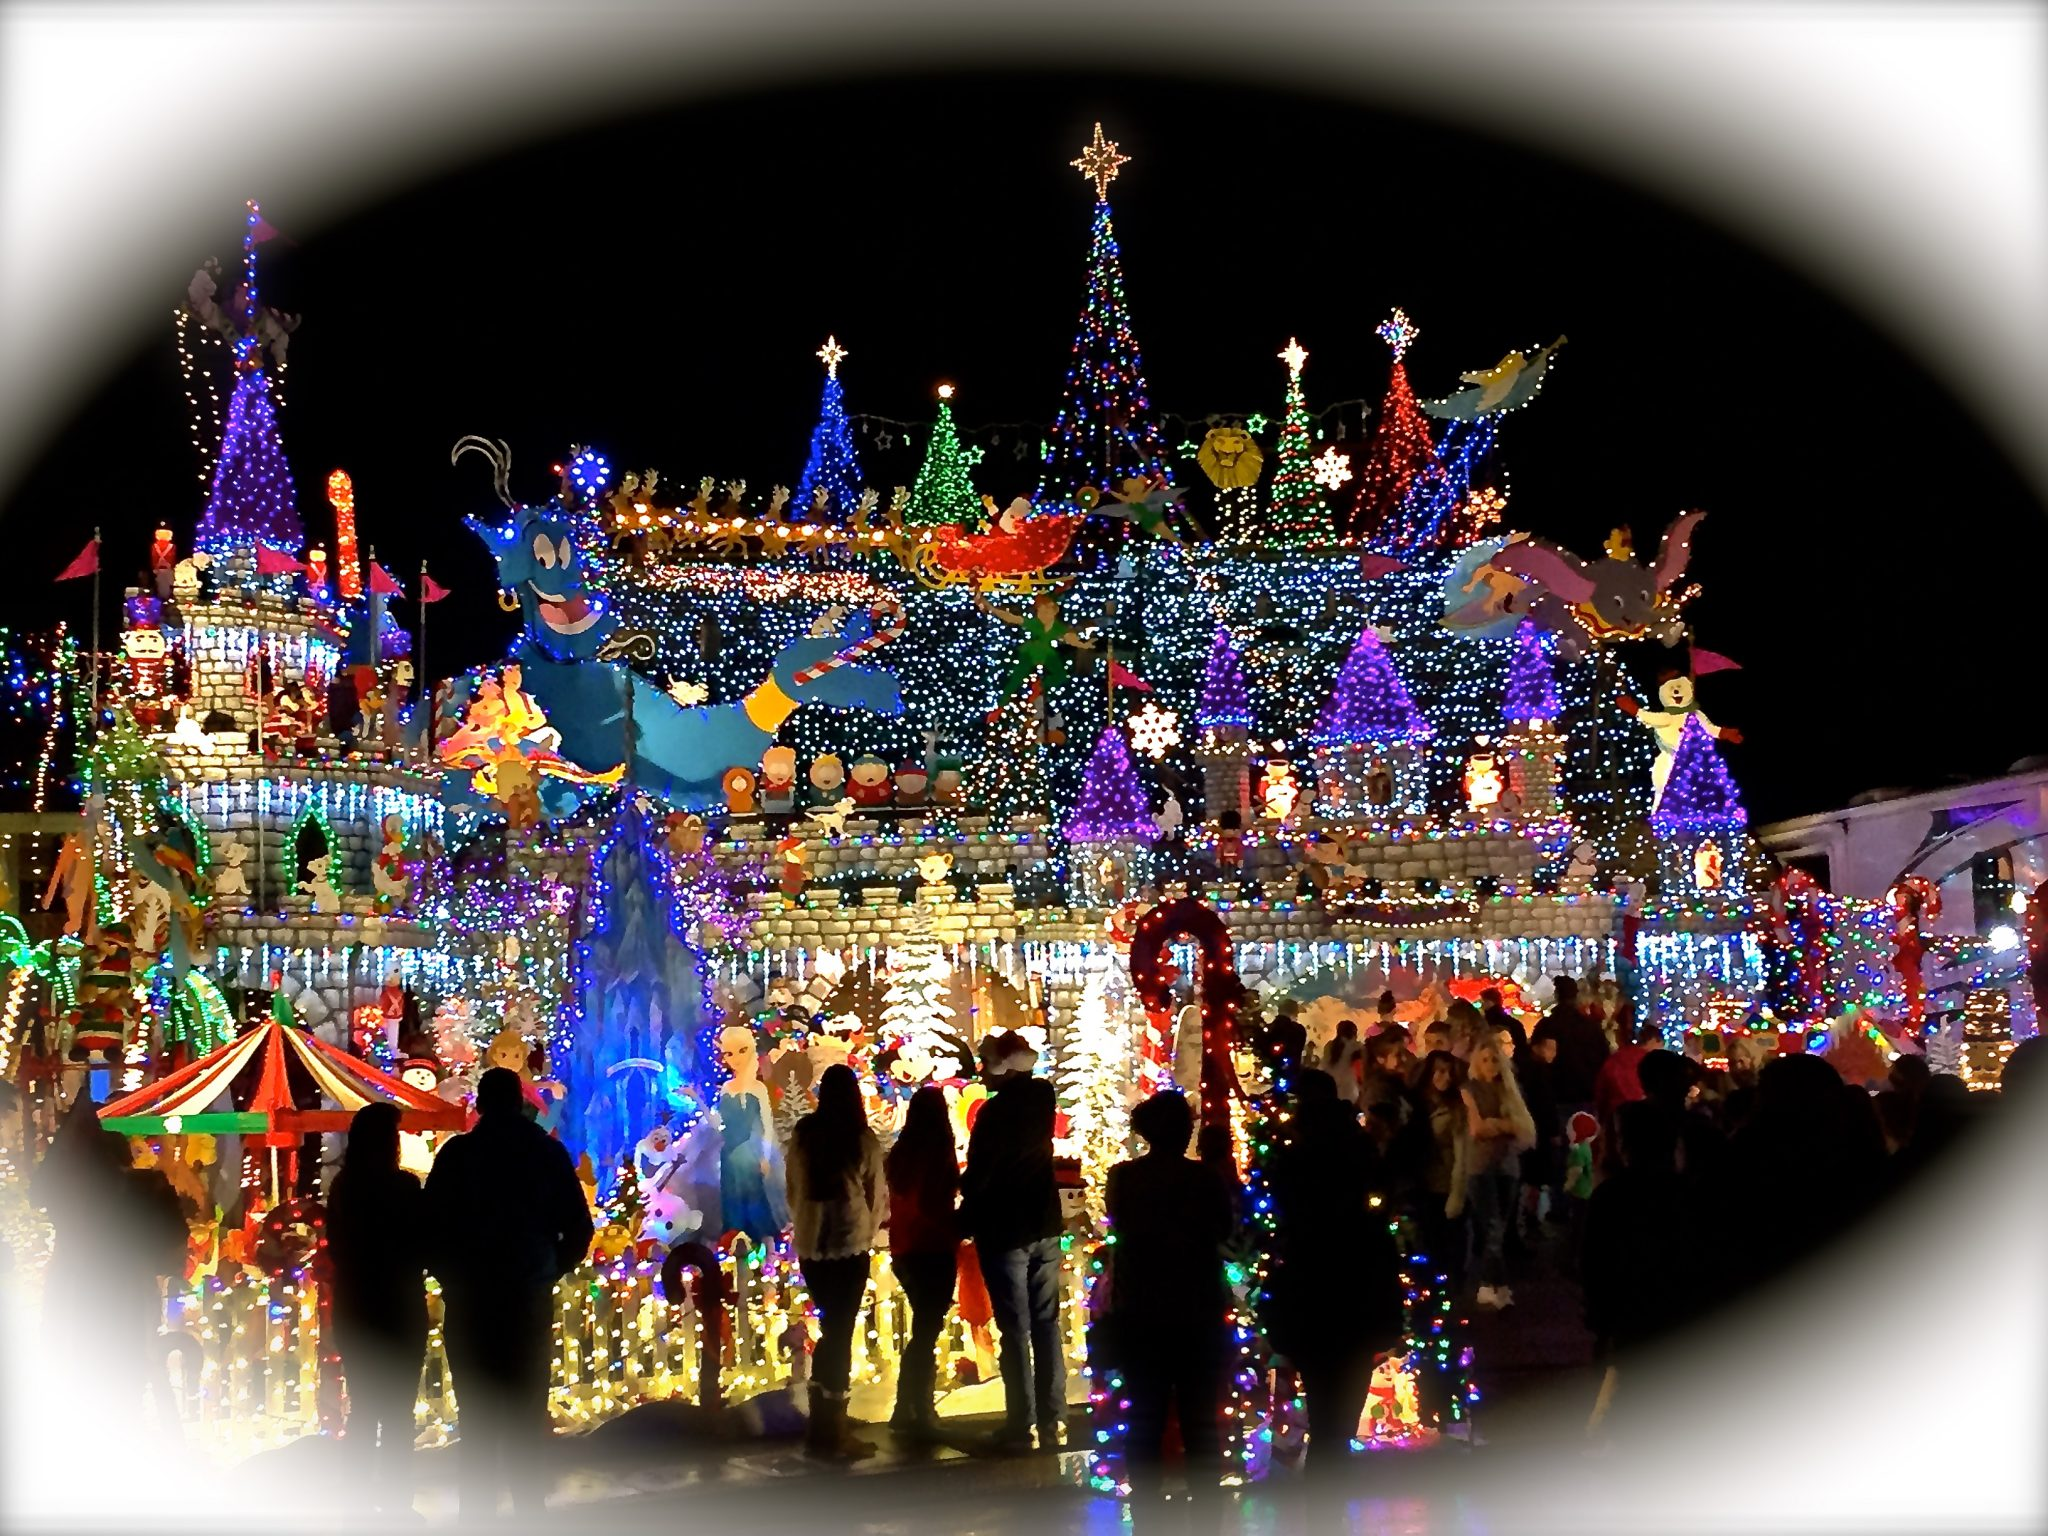 The Great Christmas Light Fight.Weaver Winter Wonderland Featured On The Great Christmas